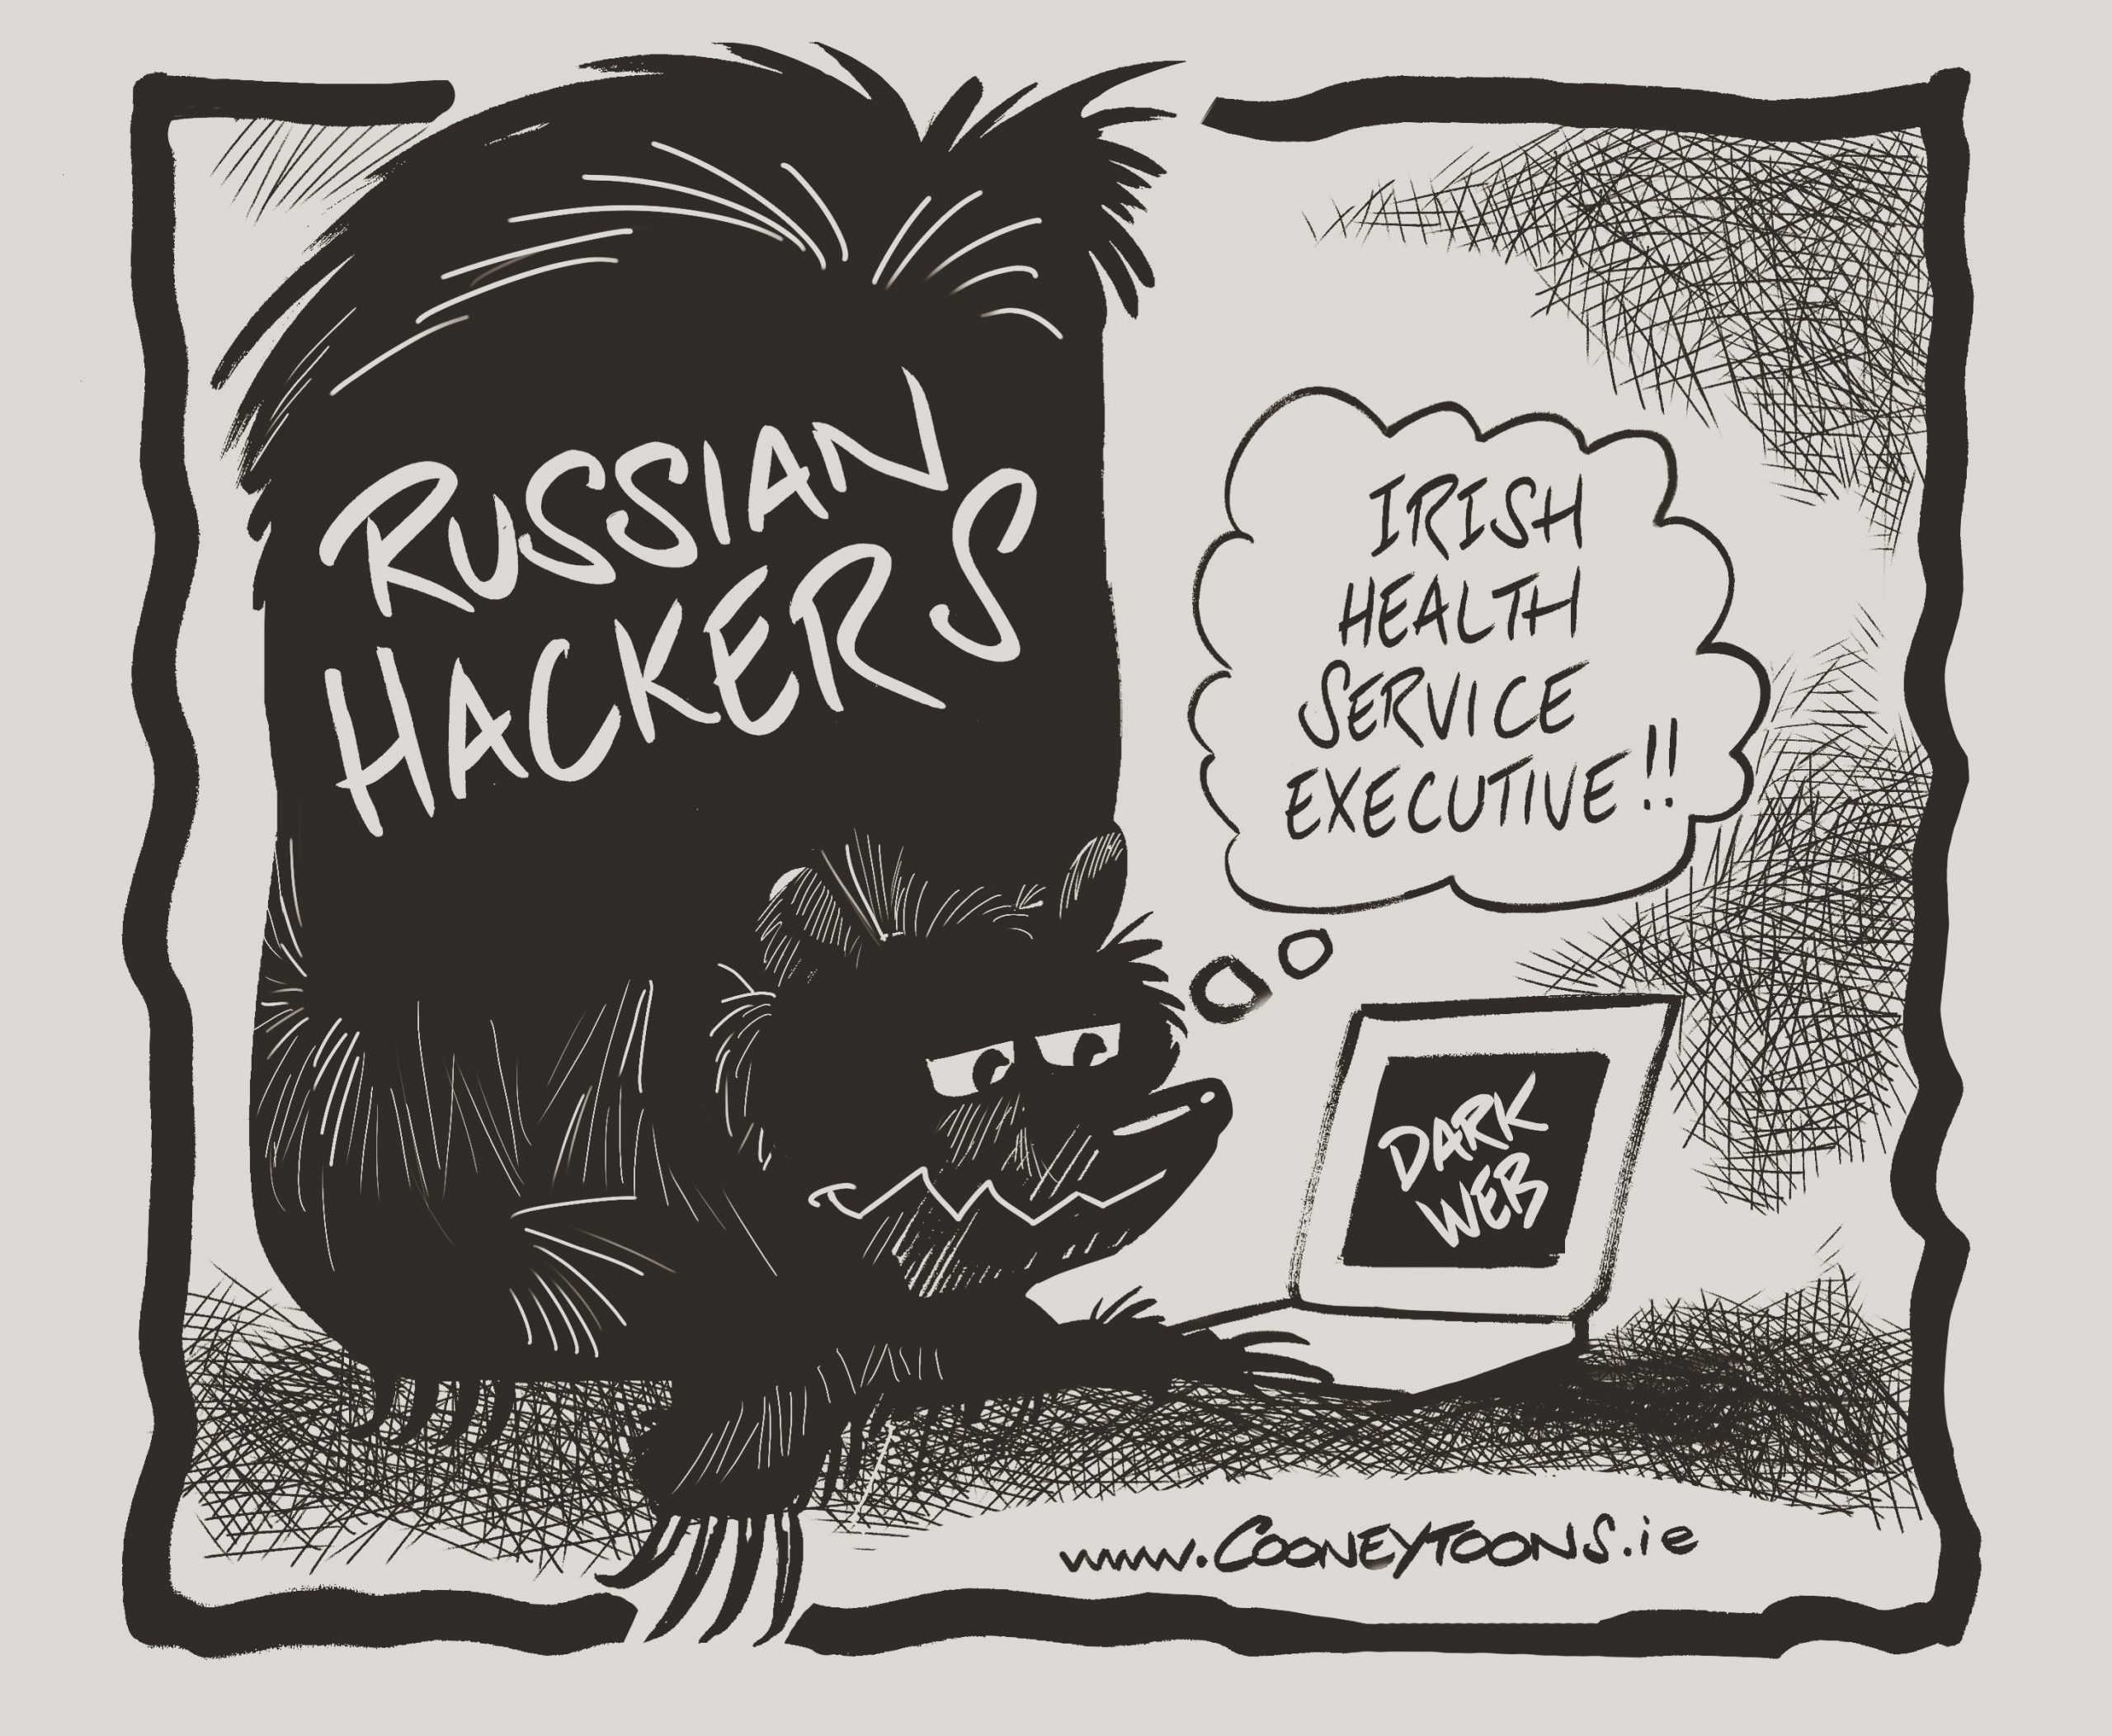 HSE HACKING ….. there may be trouble ahead !